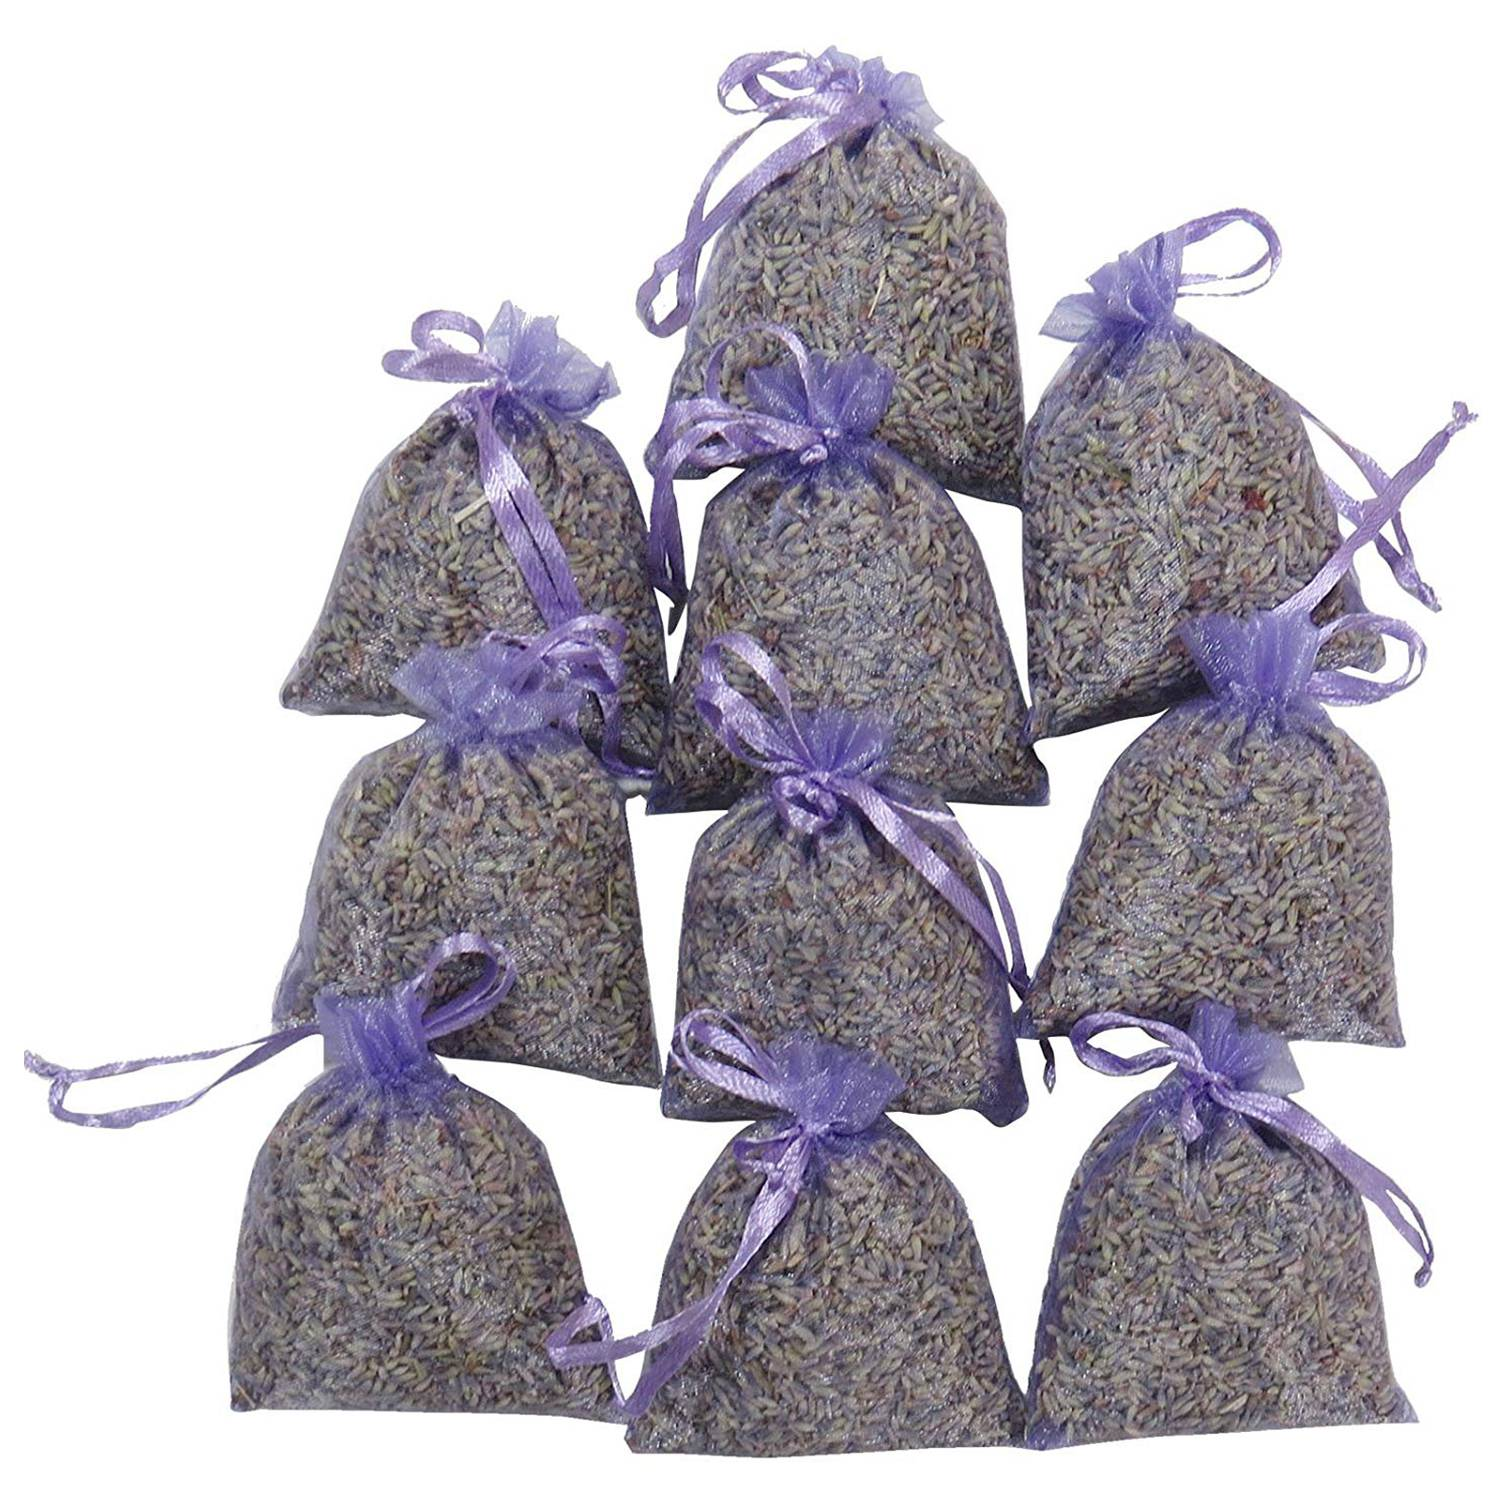 Lavender Packaging 15 Packs | Natural Deodorant, Dried Floral Sachet, Highest Fragrance Lavender Fragrance Sachet